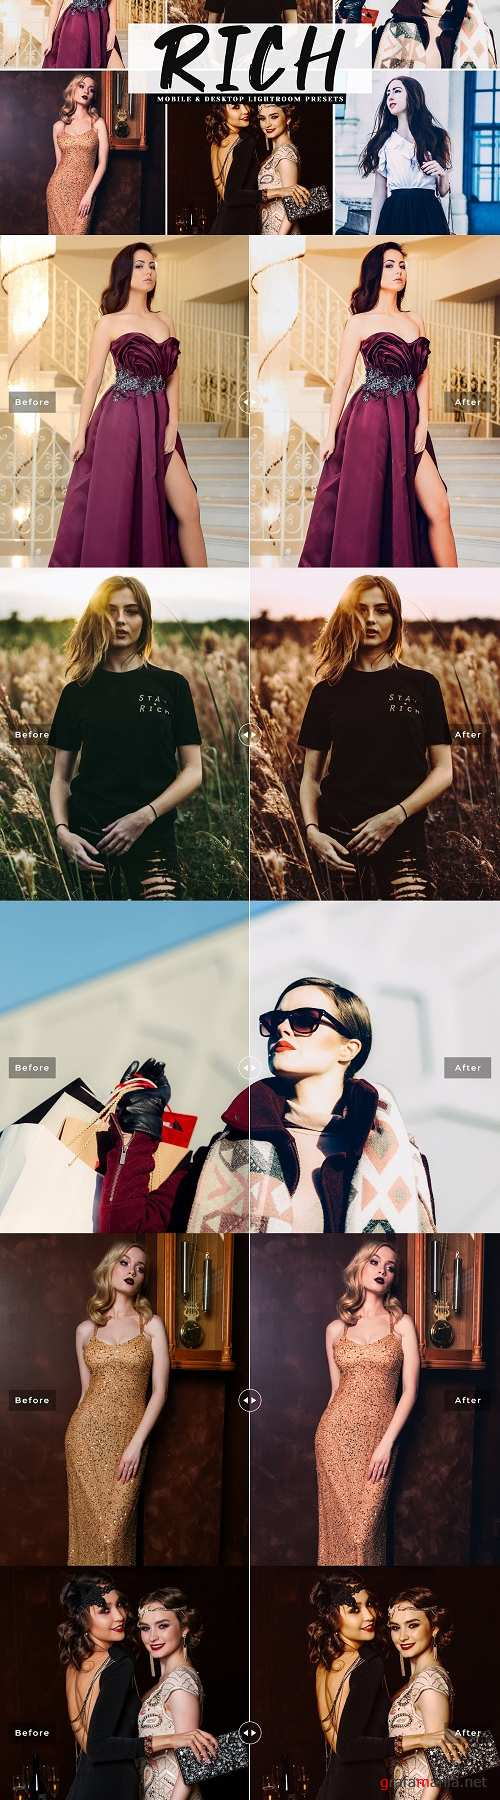 Rich Lightroom Presets Collection - 4068073